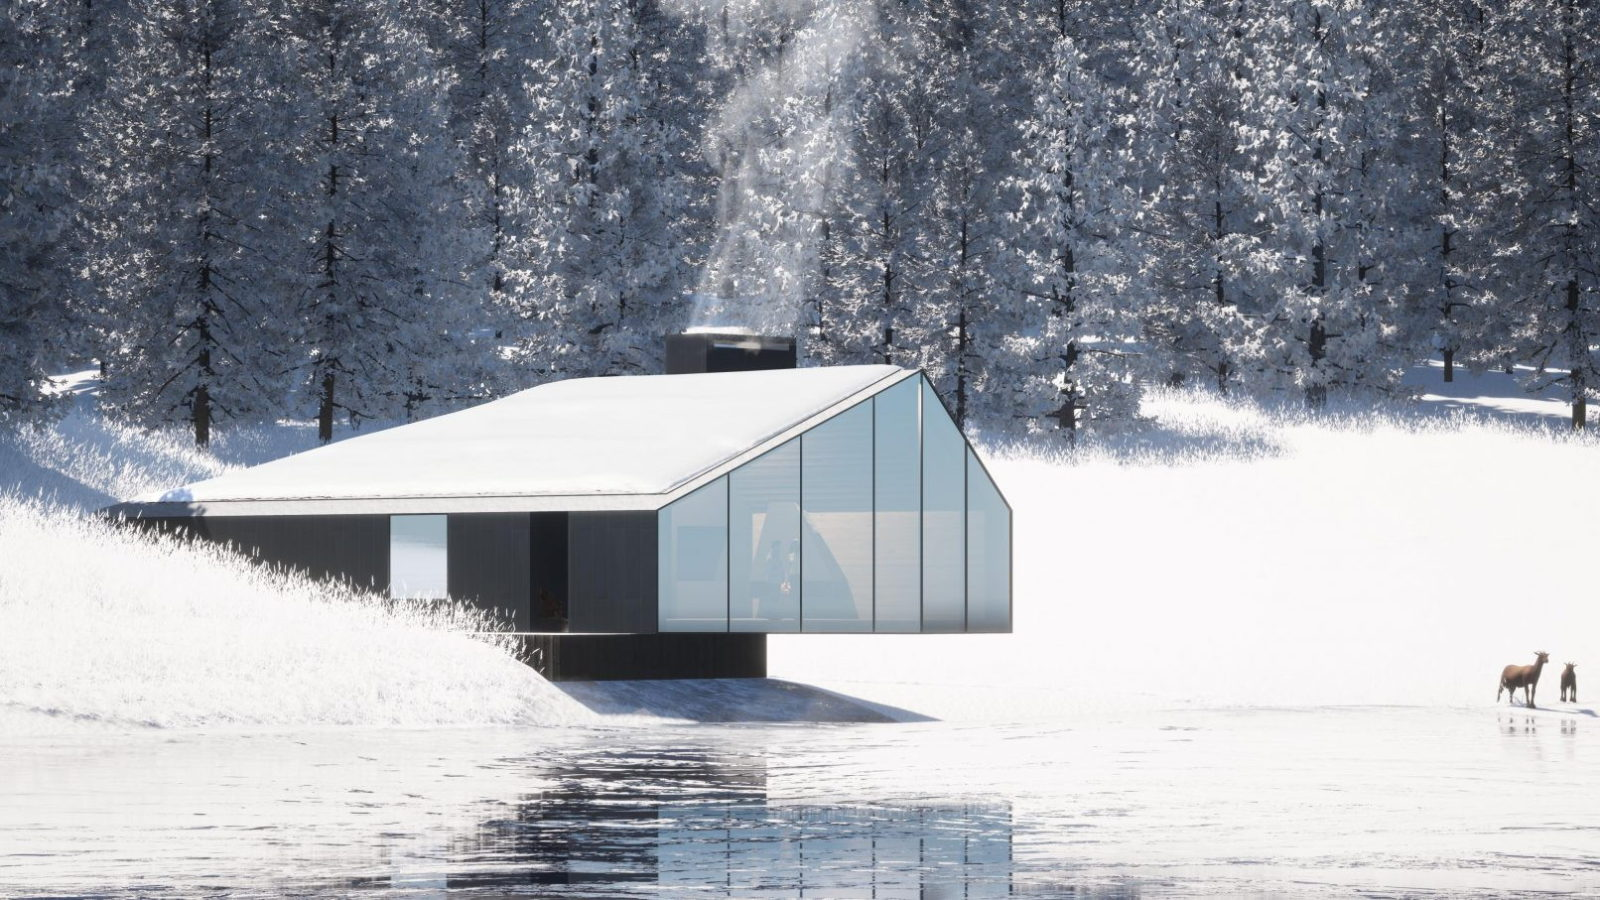 shape-shifting,-self-sufficient-zero-extreme-concept-is-the-ultimate-survival-home